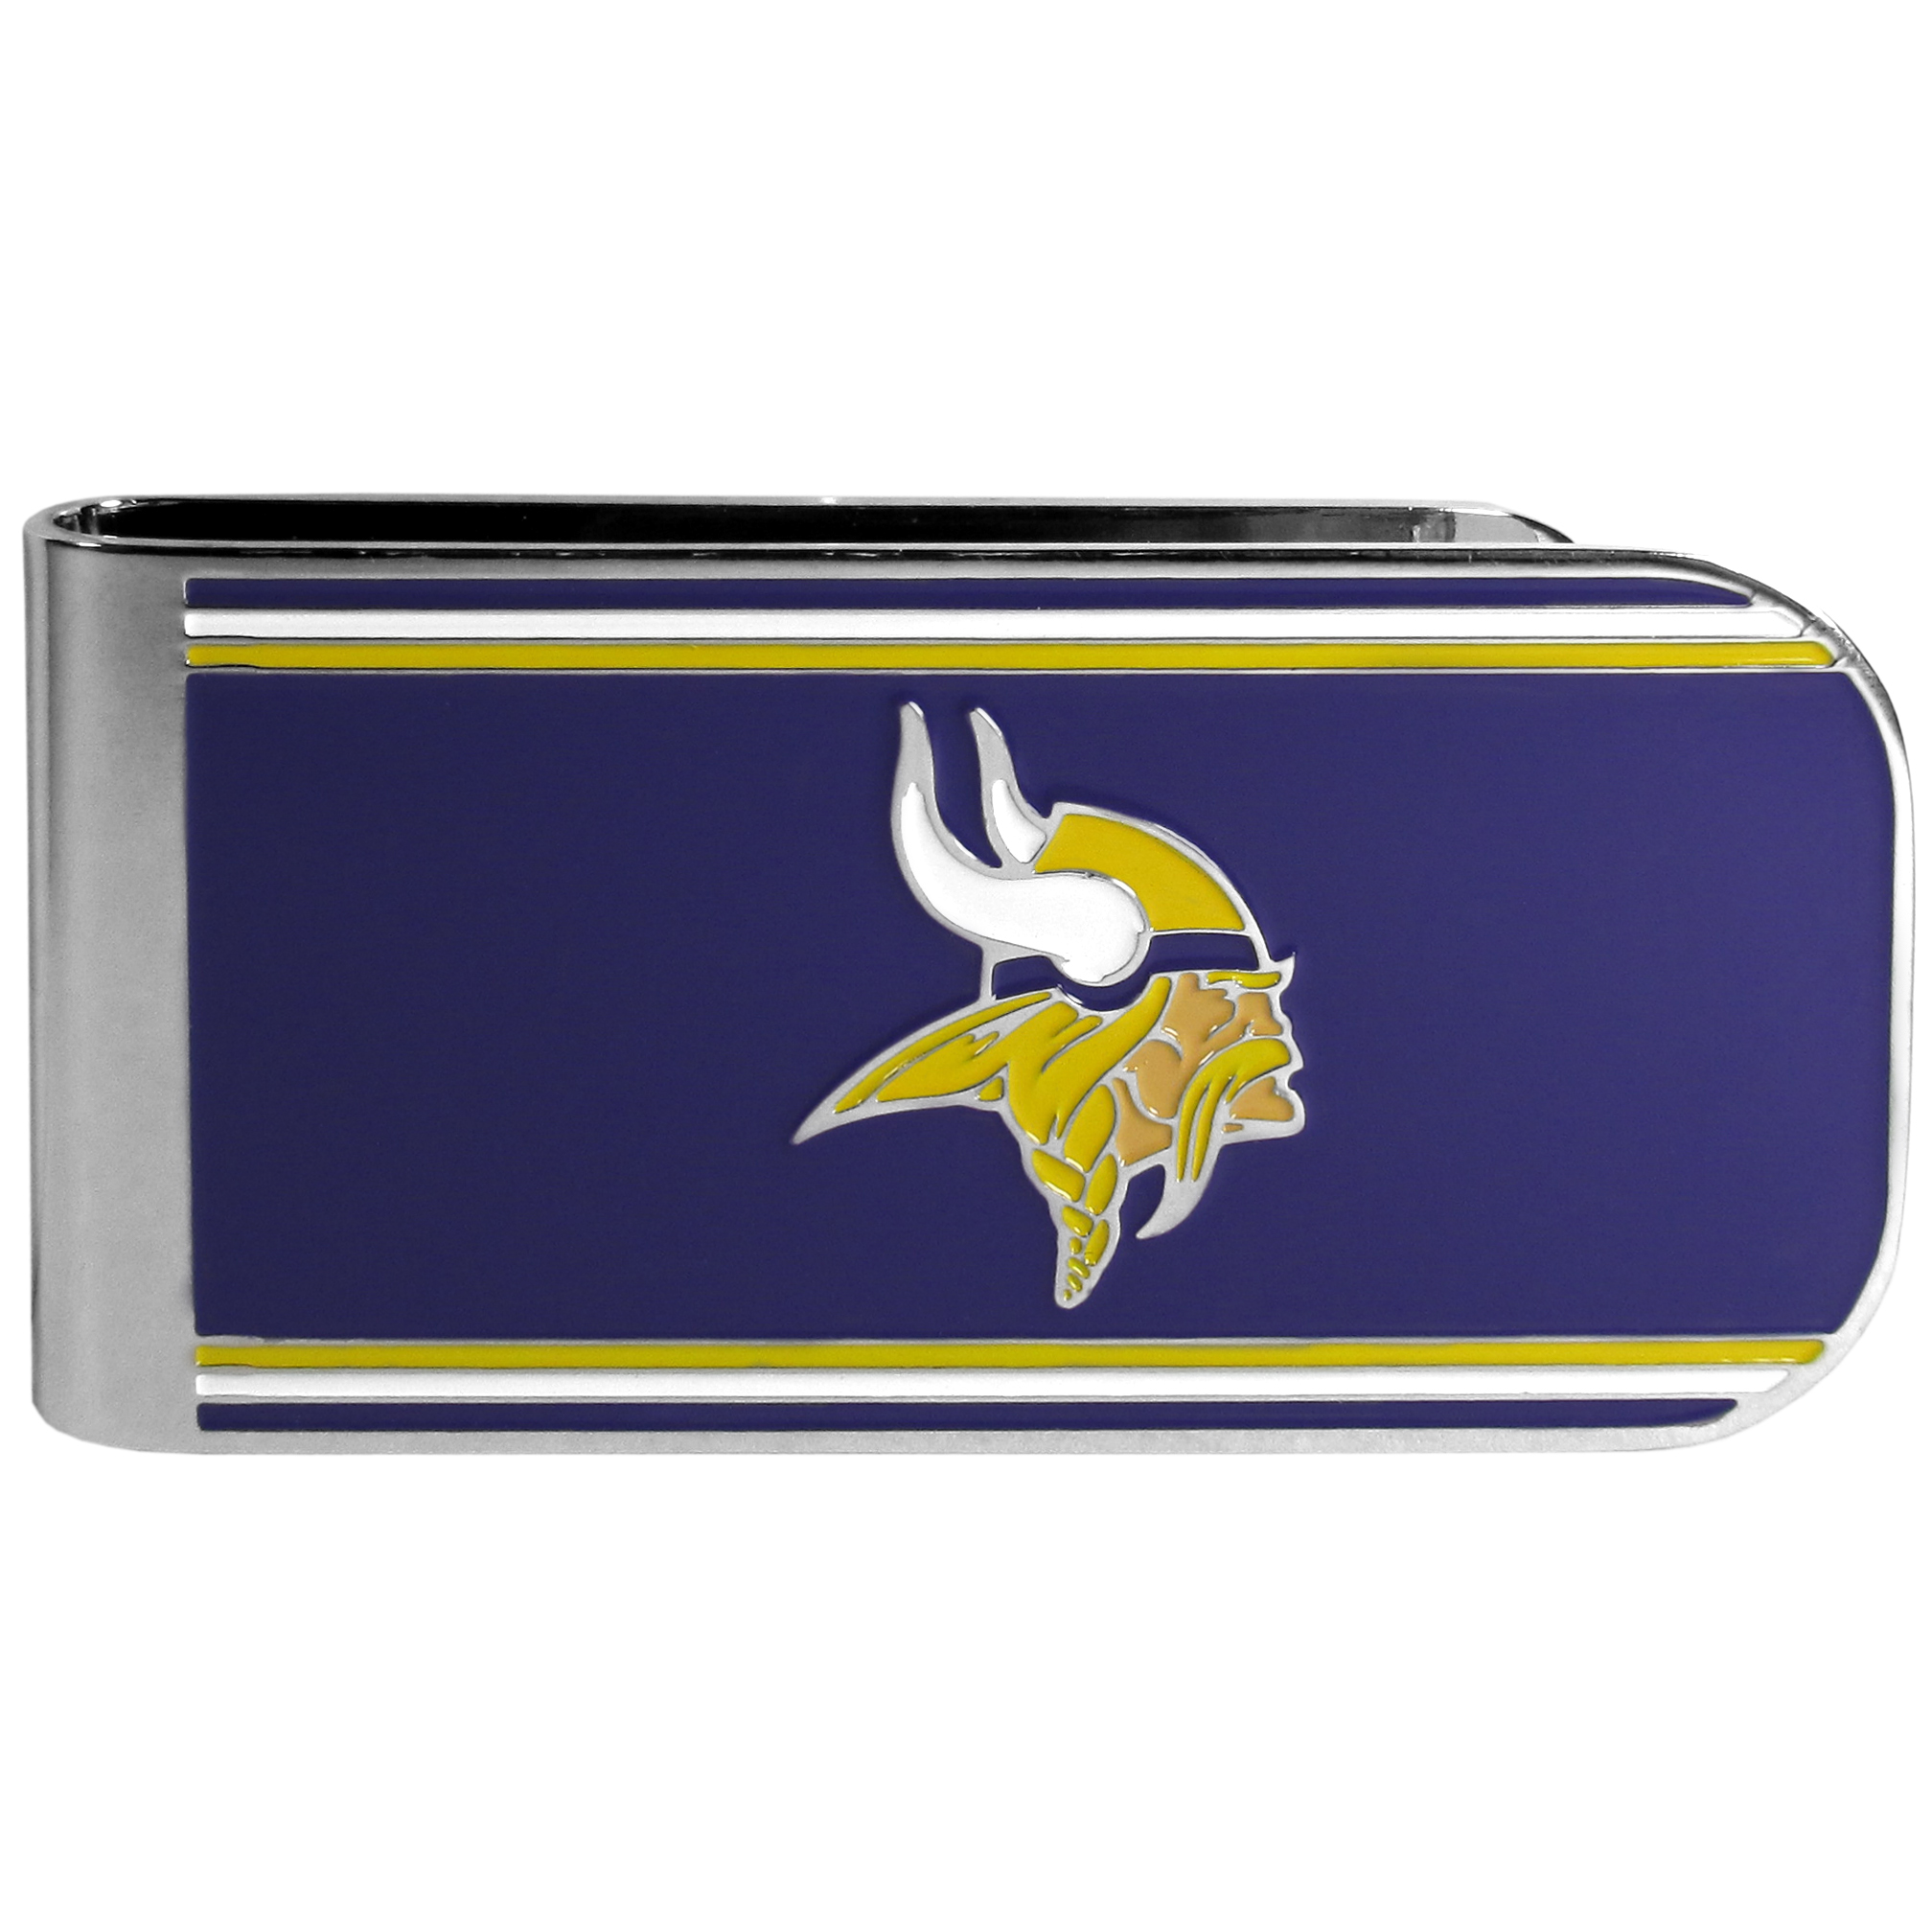 Minnesota Vikings MVP Money Clip - Our MVP money clip is made of high quality steel with a chrome overlay and enameled team colors and logo. The exceptional craftmanship on this piece makes it a men's fashion accessory that any fan would be proud to own. The cast detail in the Minnesota Vikings logo is perfectly detailed. The clip features an inner spring to hold your cash and cards securely in place.